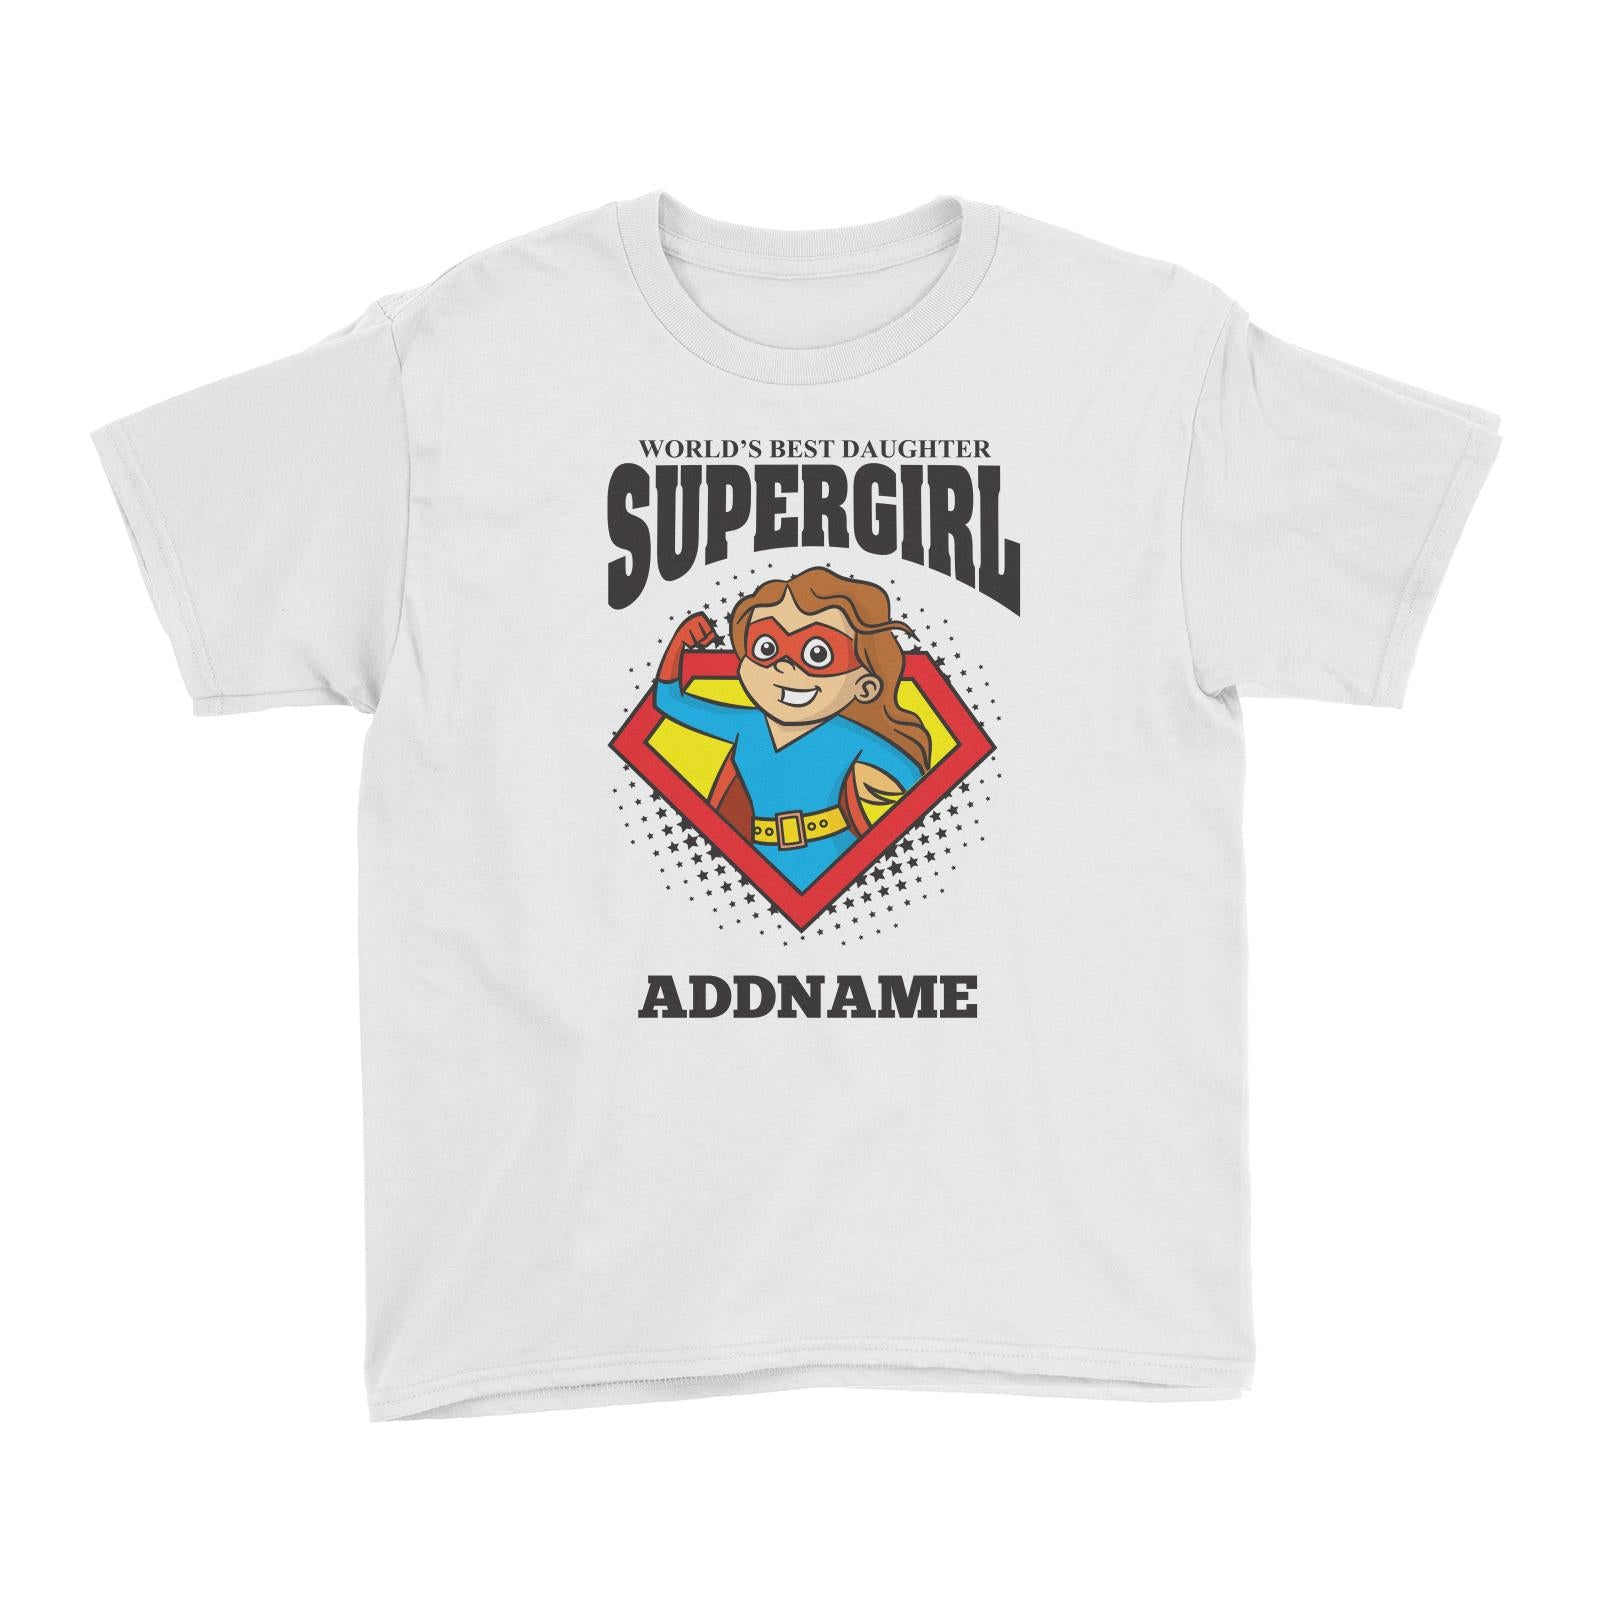 Best Daughter Supergirl Girl (FLASH DEAL) Kid's T-Shirt Personalizable Designs Matching Family Superhero Family Edition Superhero